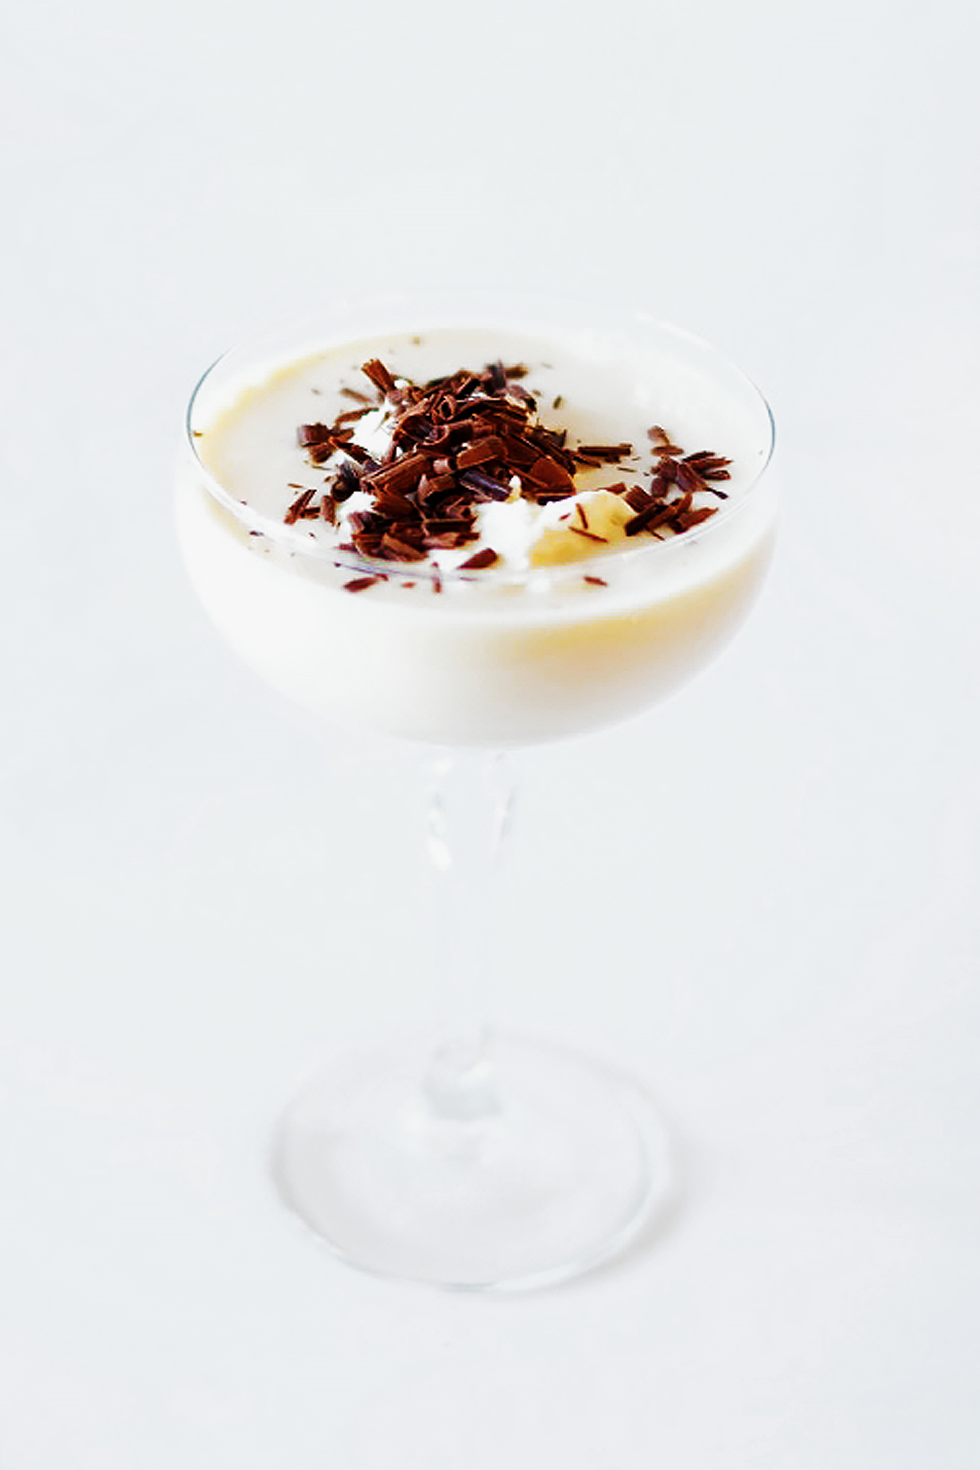 Delicious Spiked Eggnog Recipes - Best Eggnog Drinks for the ...